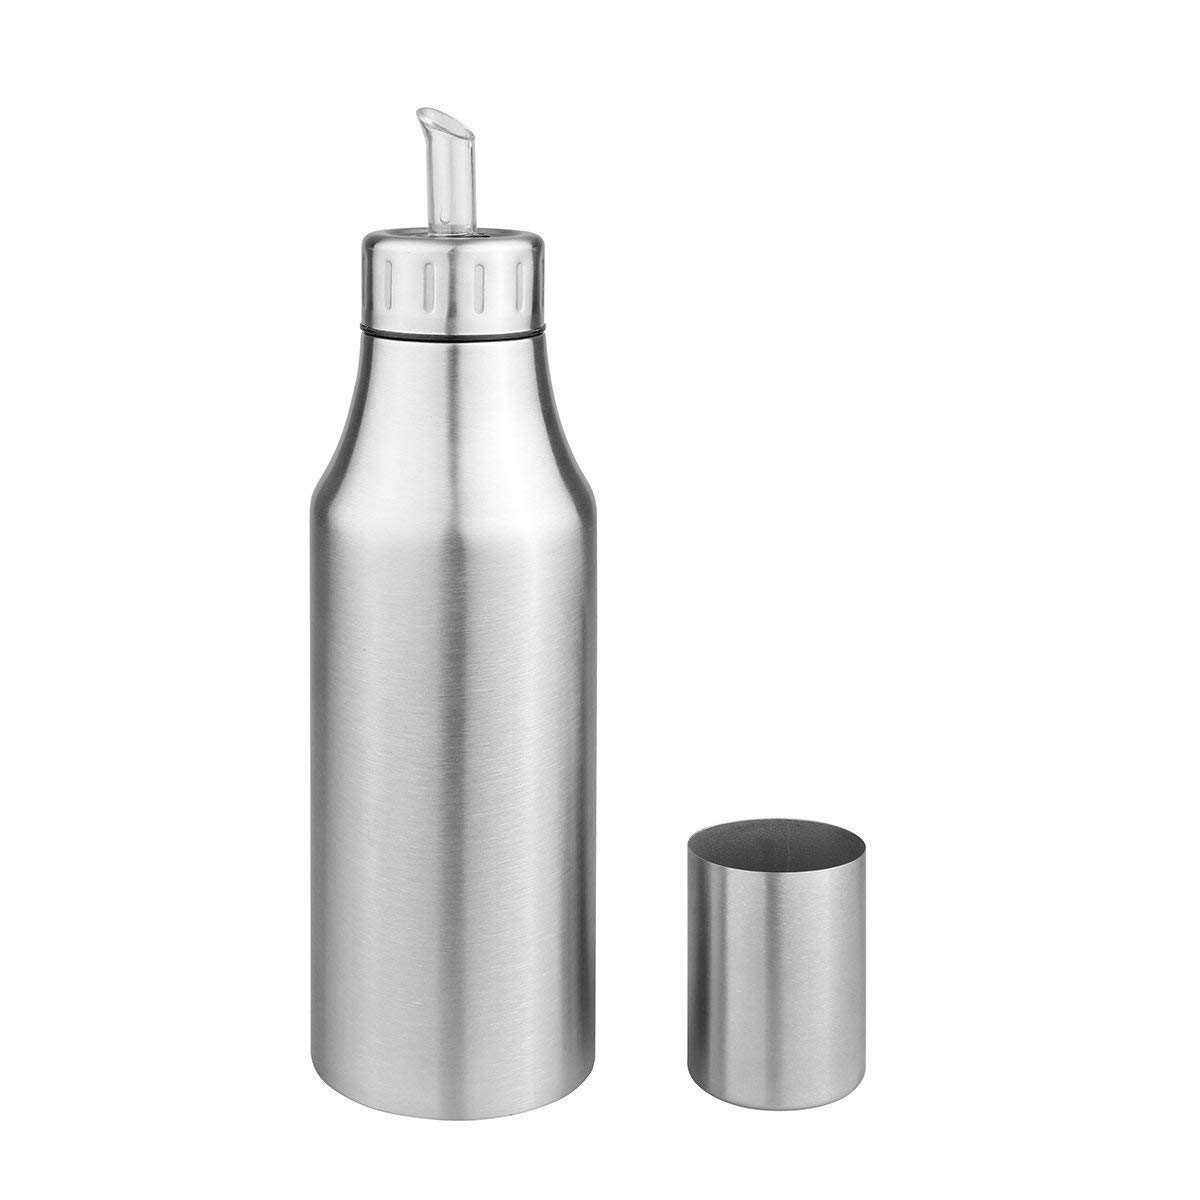 YANSE Oil & Vinegar Dispenser - Stainless Steel Olive Oil Dispenser, Non drip Pouring Spout,Leak-Proof Oil Bottle (750ml)